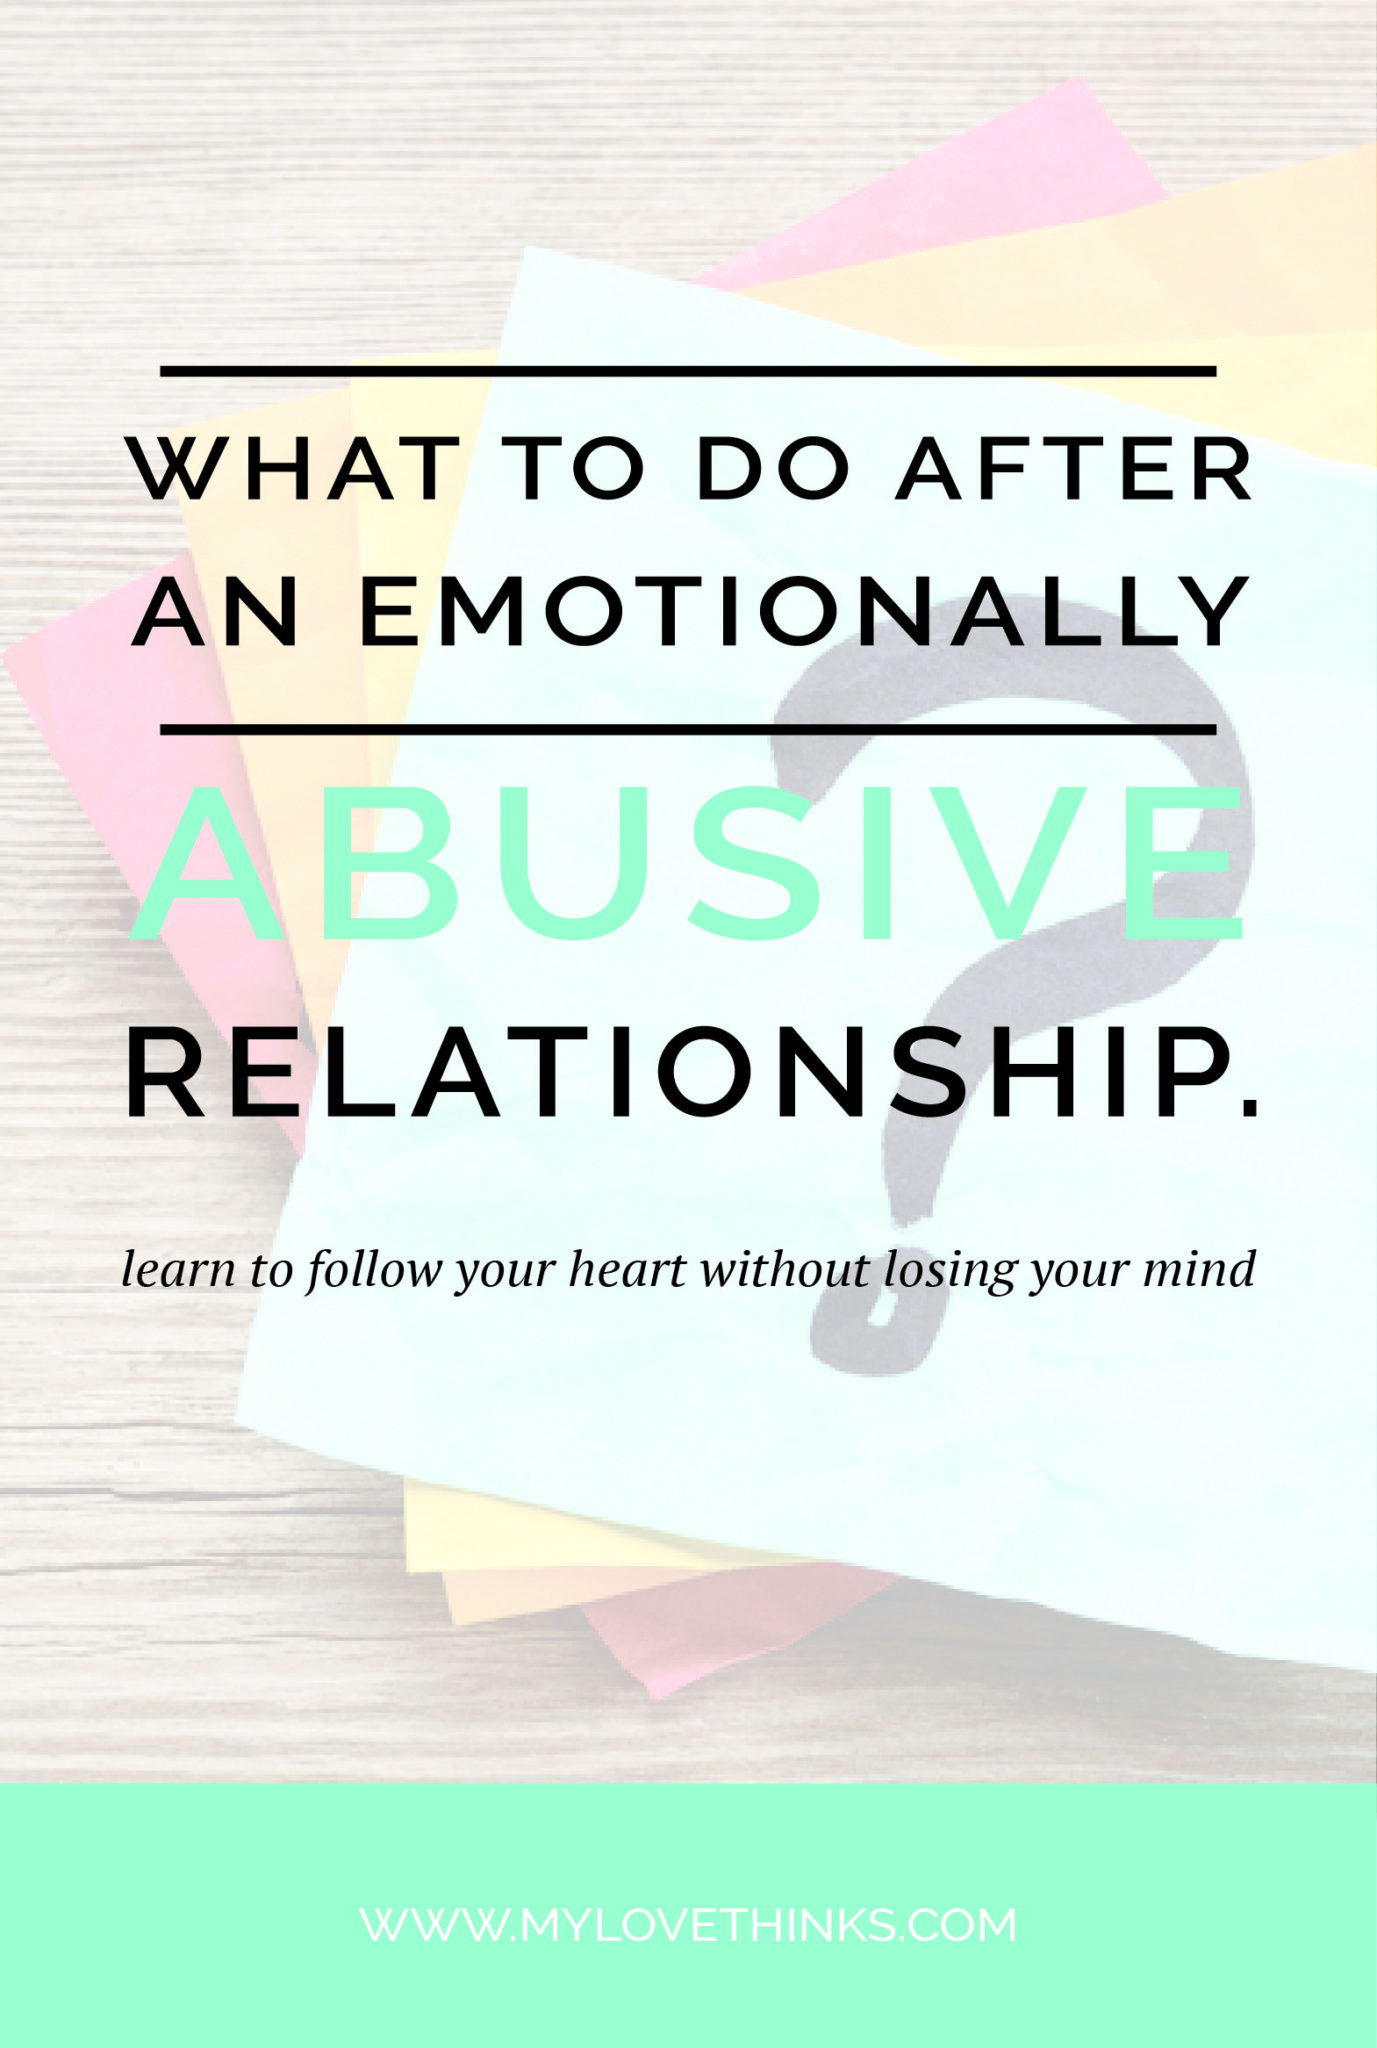 what to do after an emotionally abusive relationship